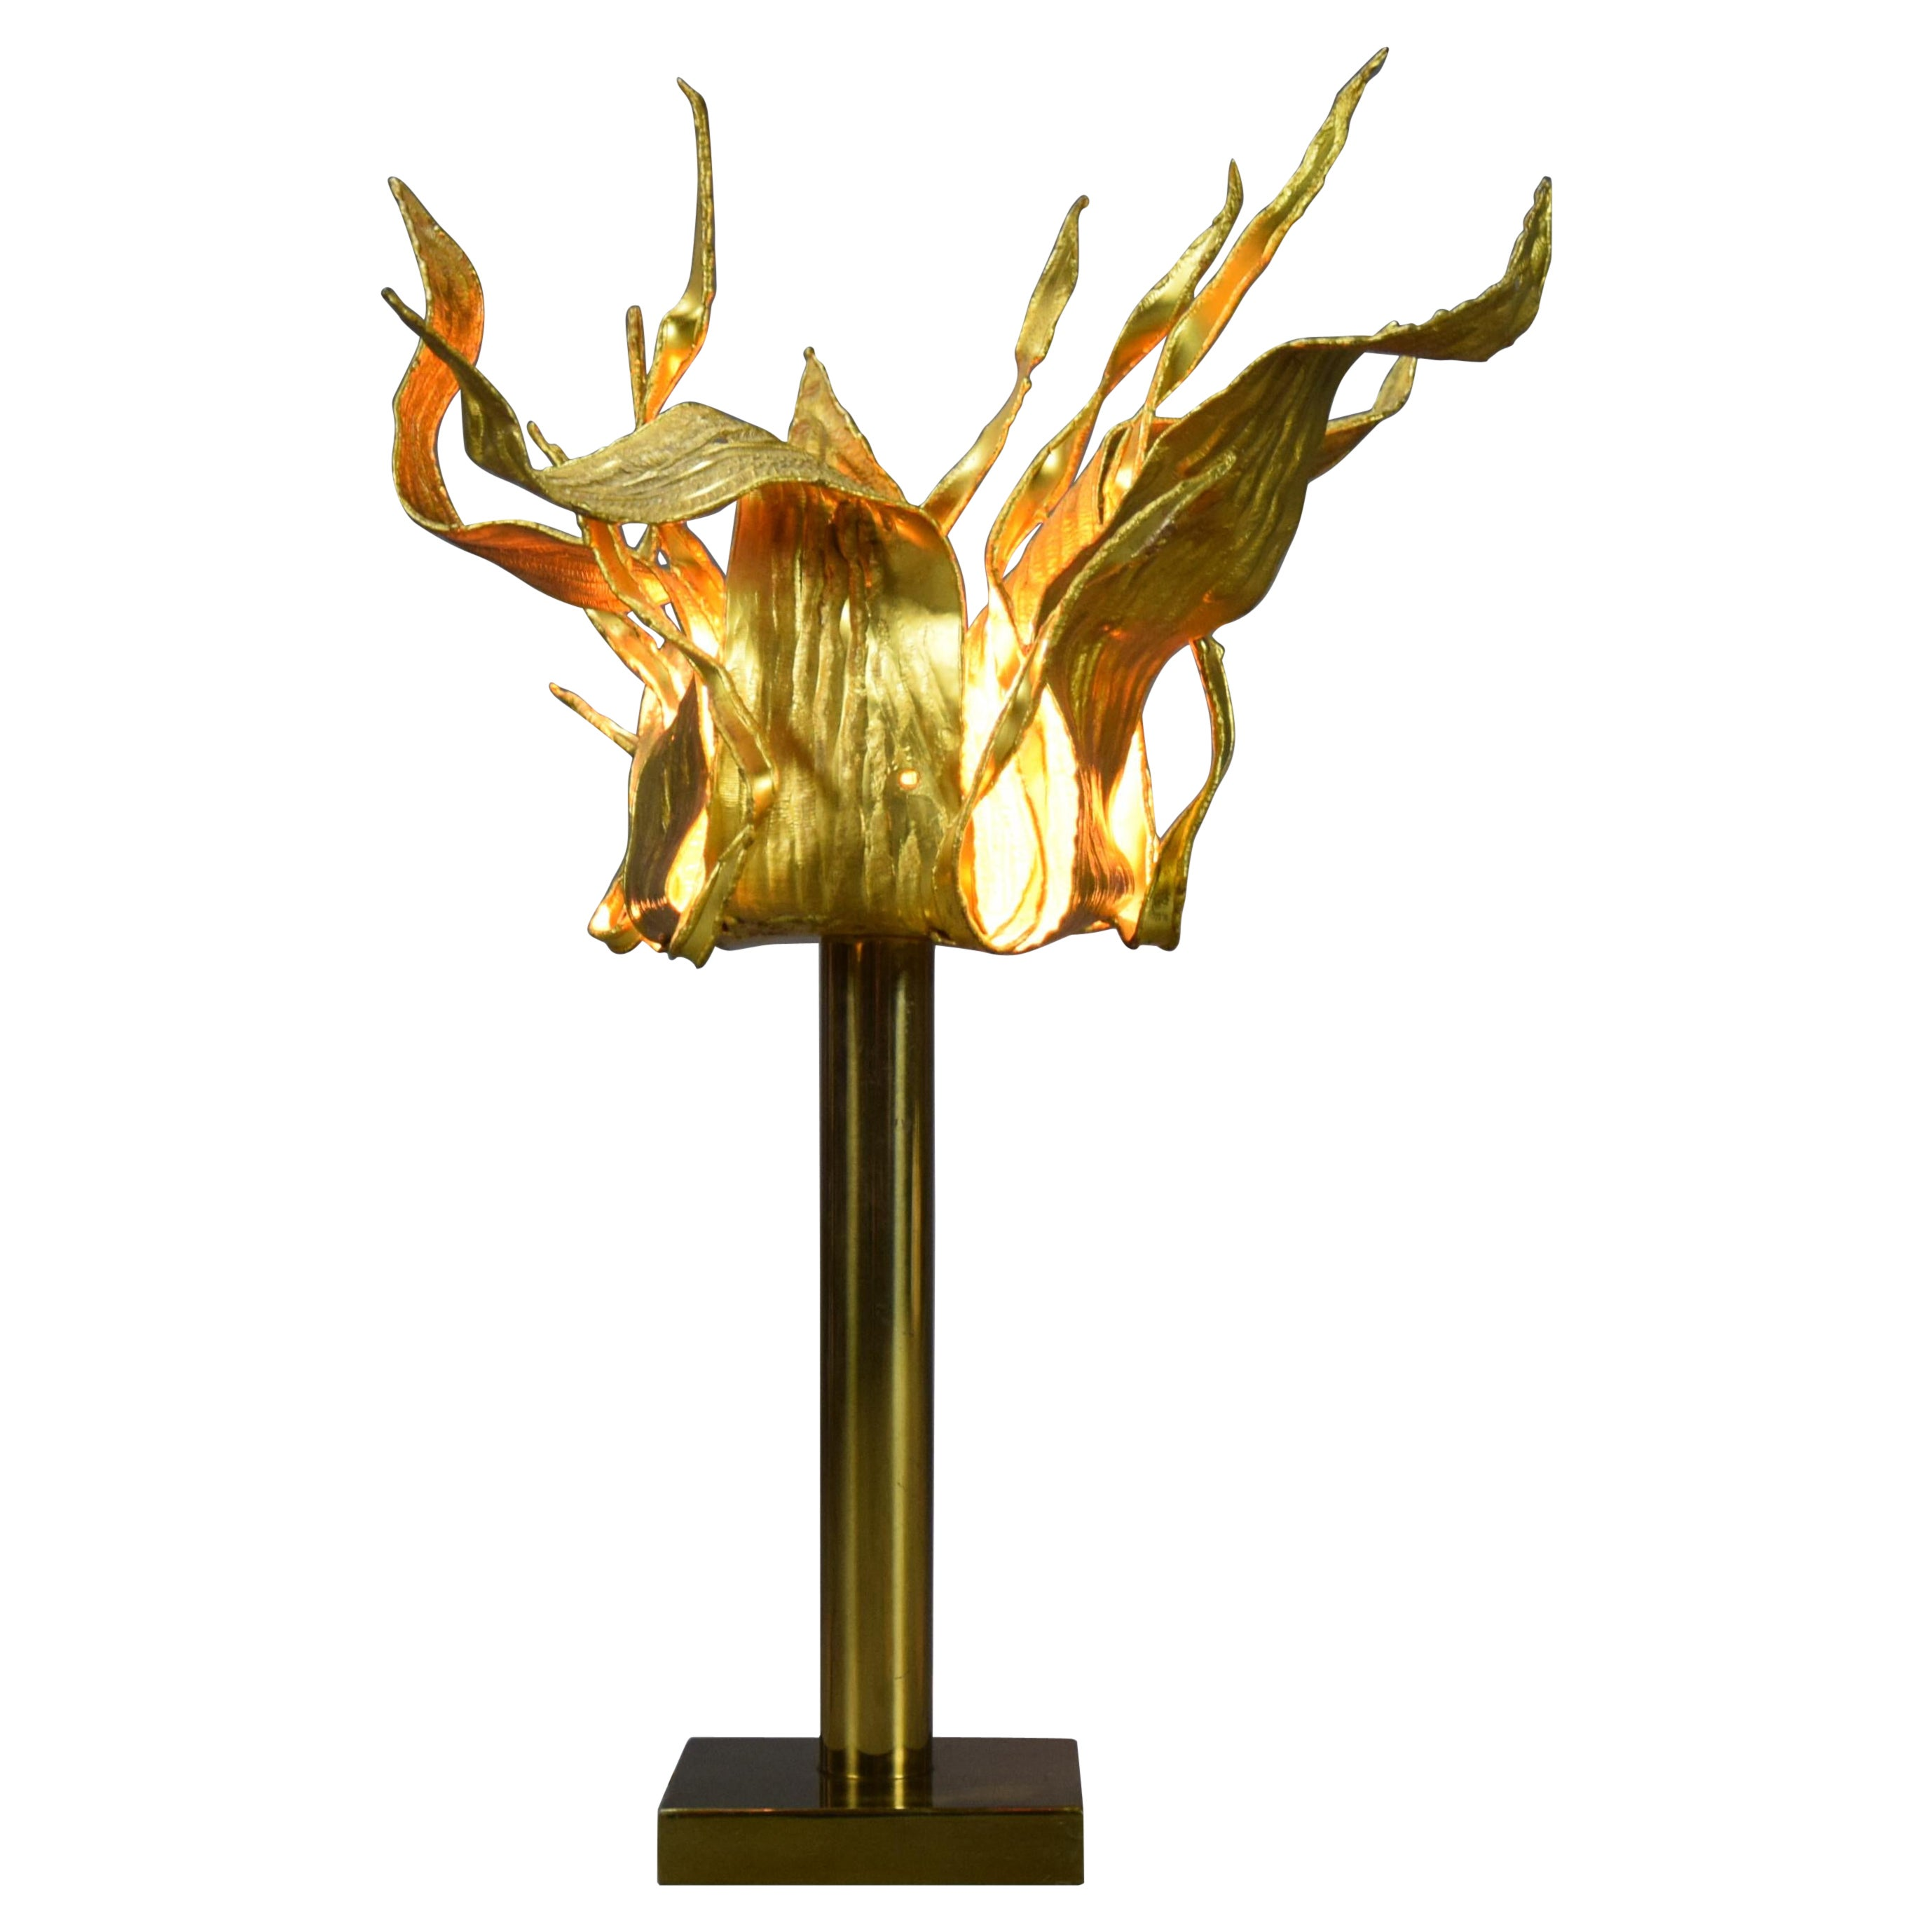 One of a Kind Gilded Bronze 1970 Table Lamp